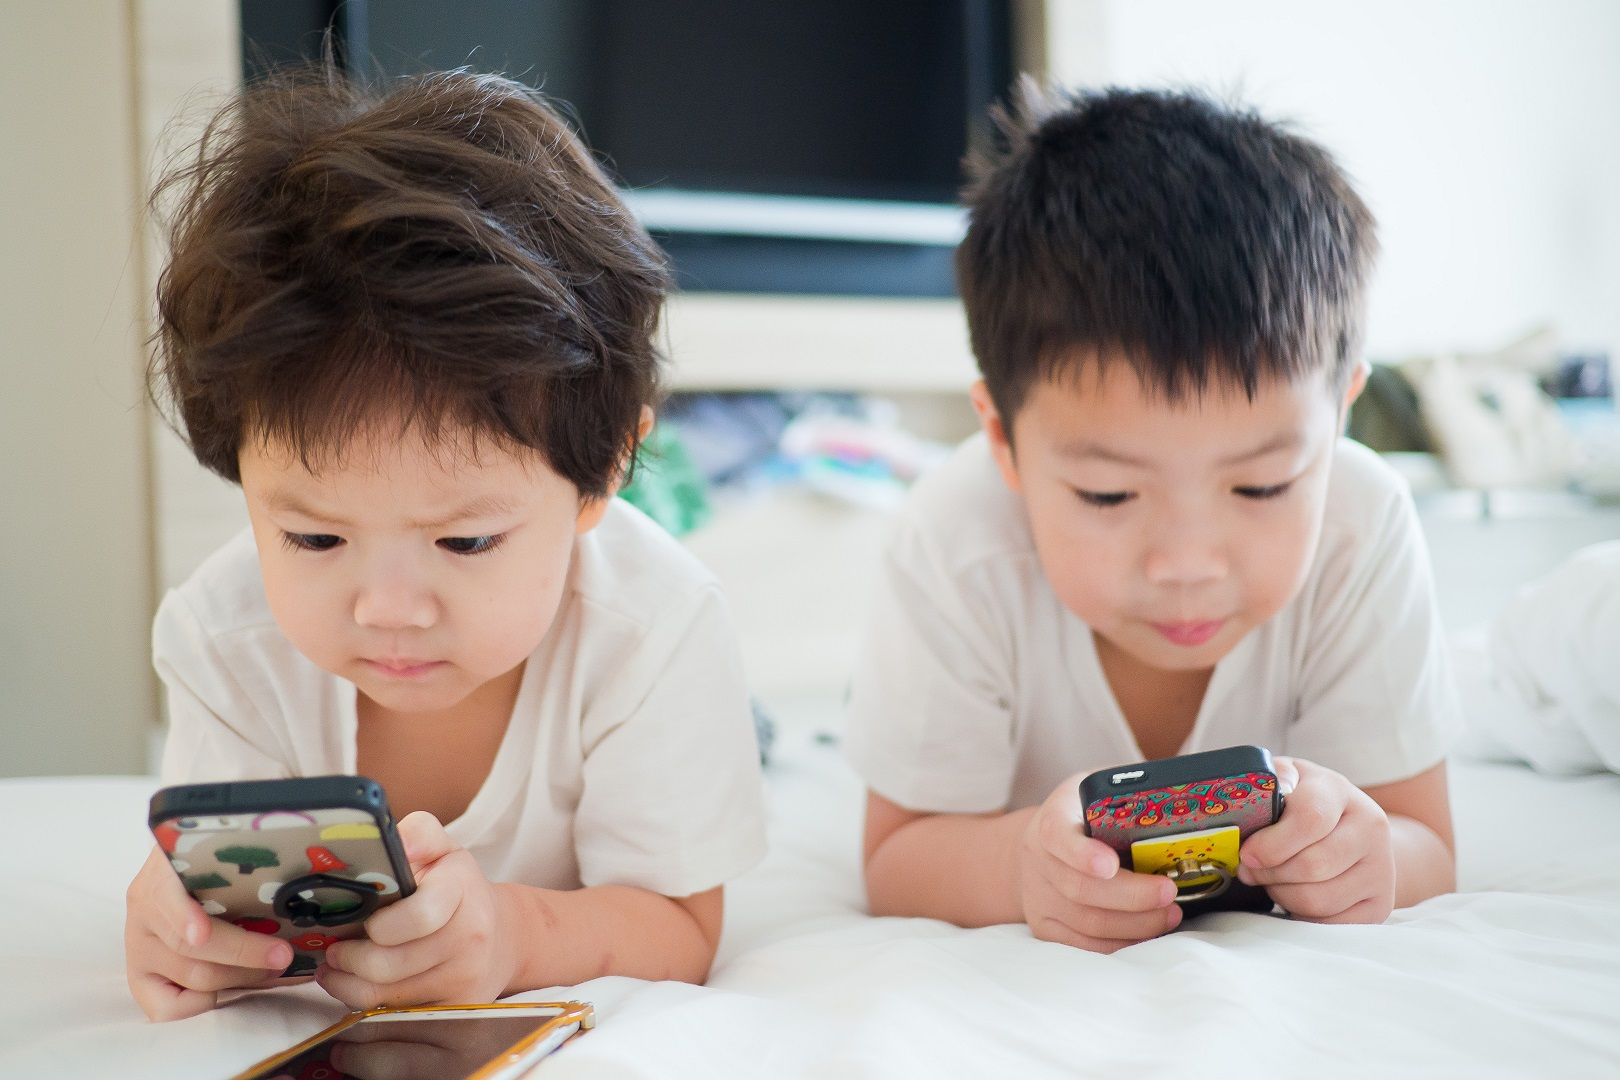 7 Top-Rated Apps to Keep Your Children Safer